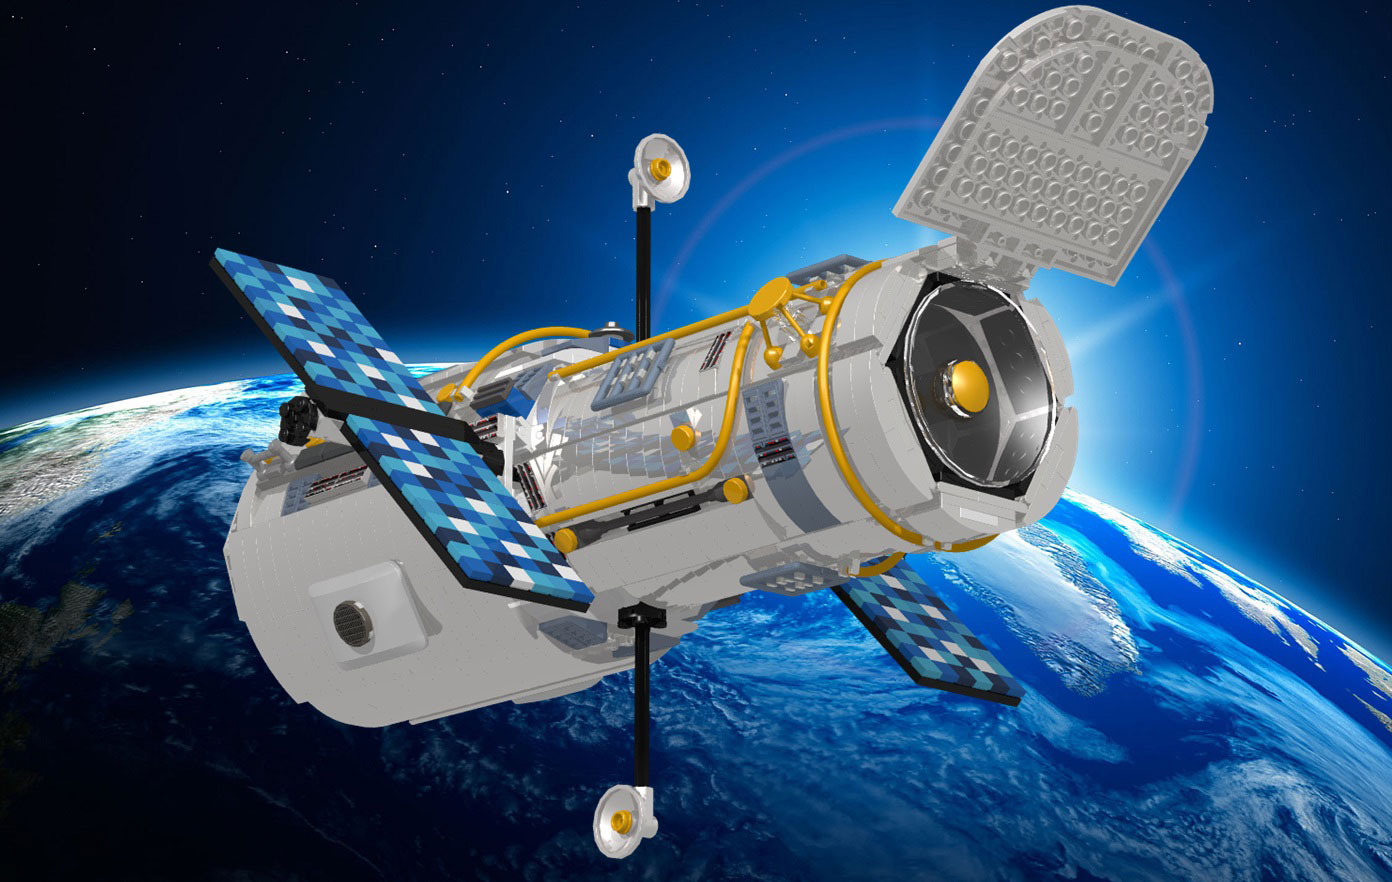 Hubble Space Telescope Could Become LEGO Model with Fan Votes